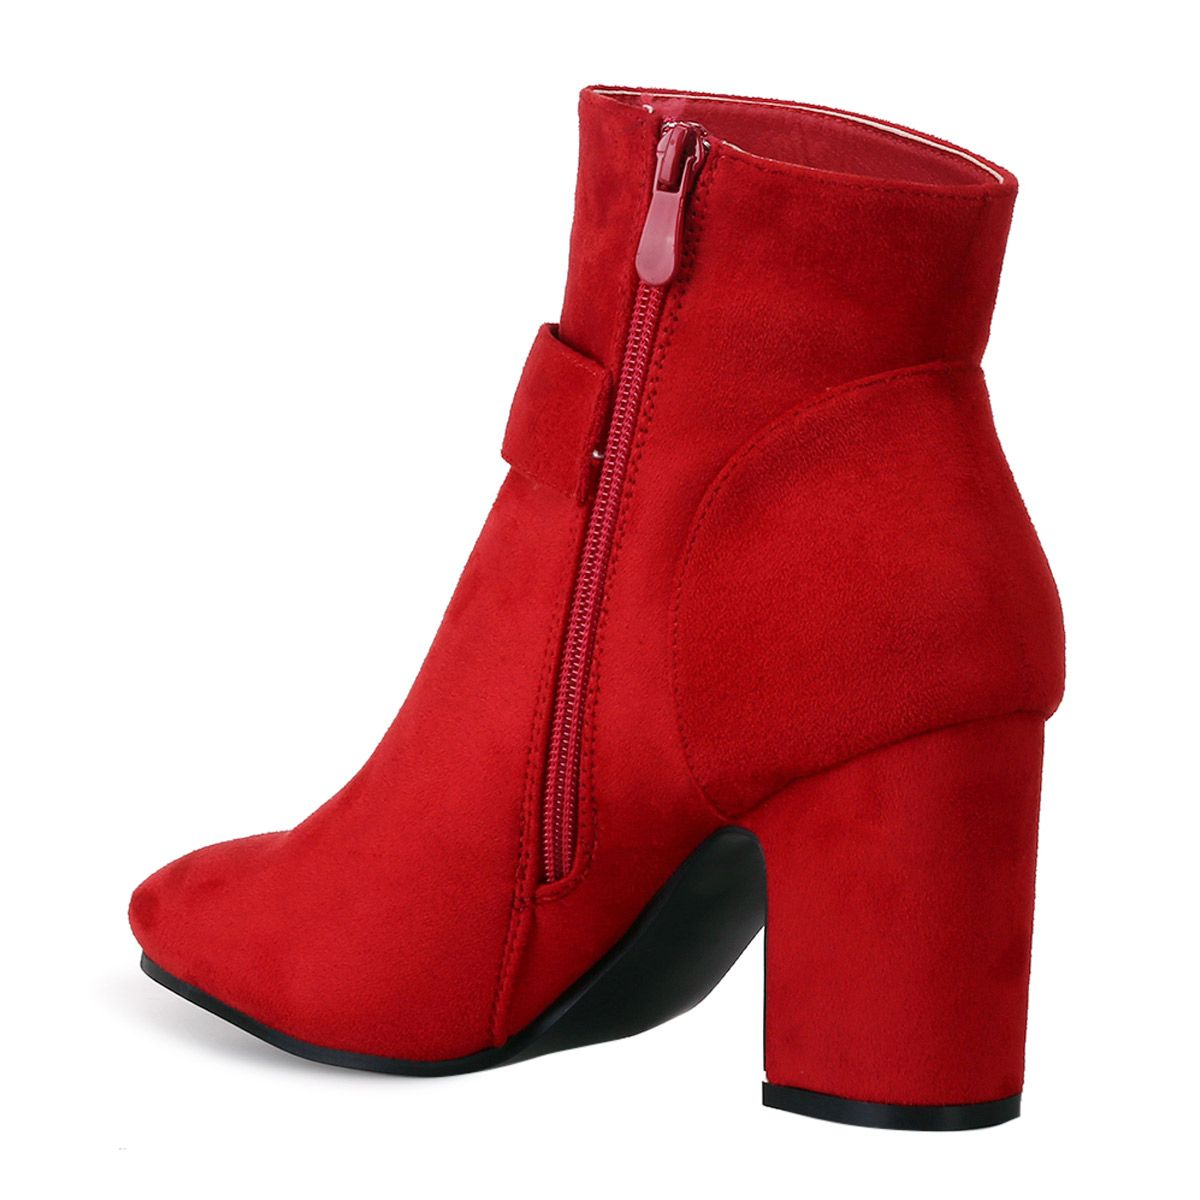 Bottines en suédine rouges à bijoux